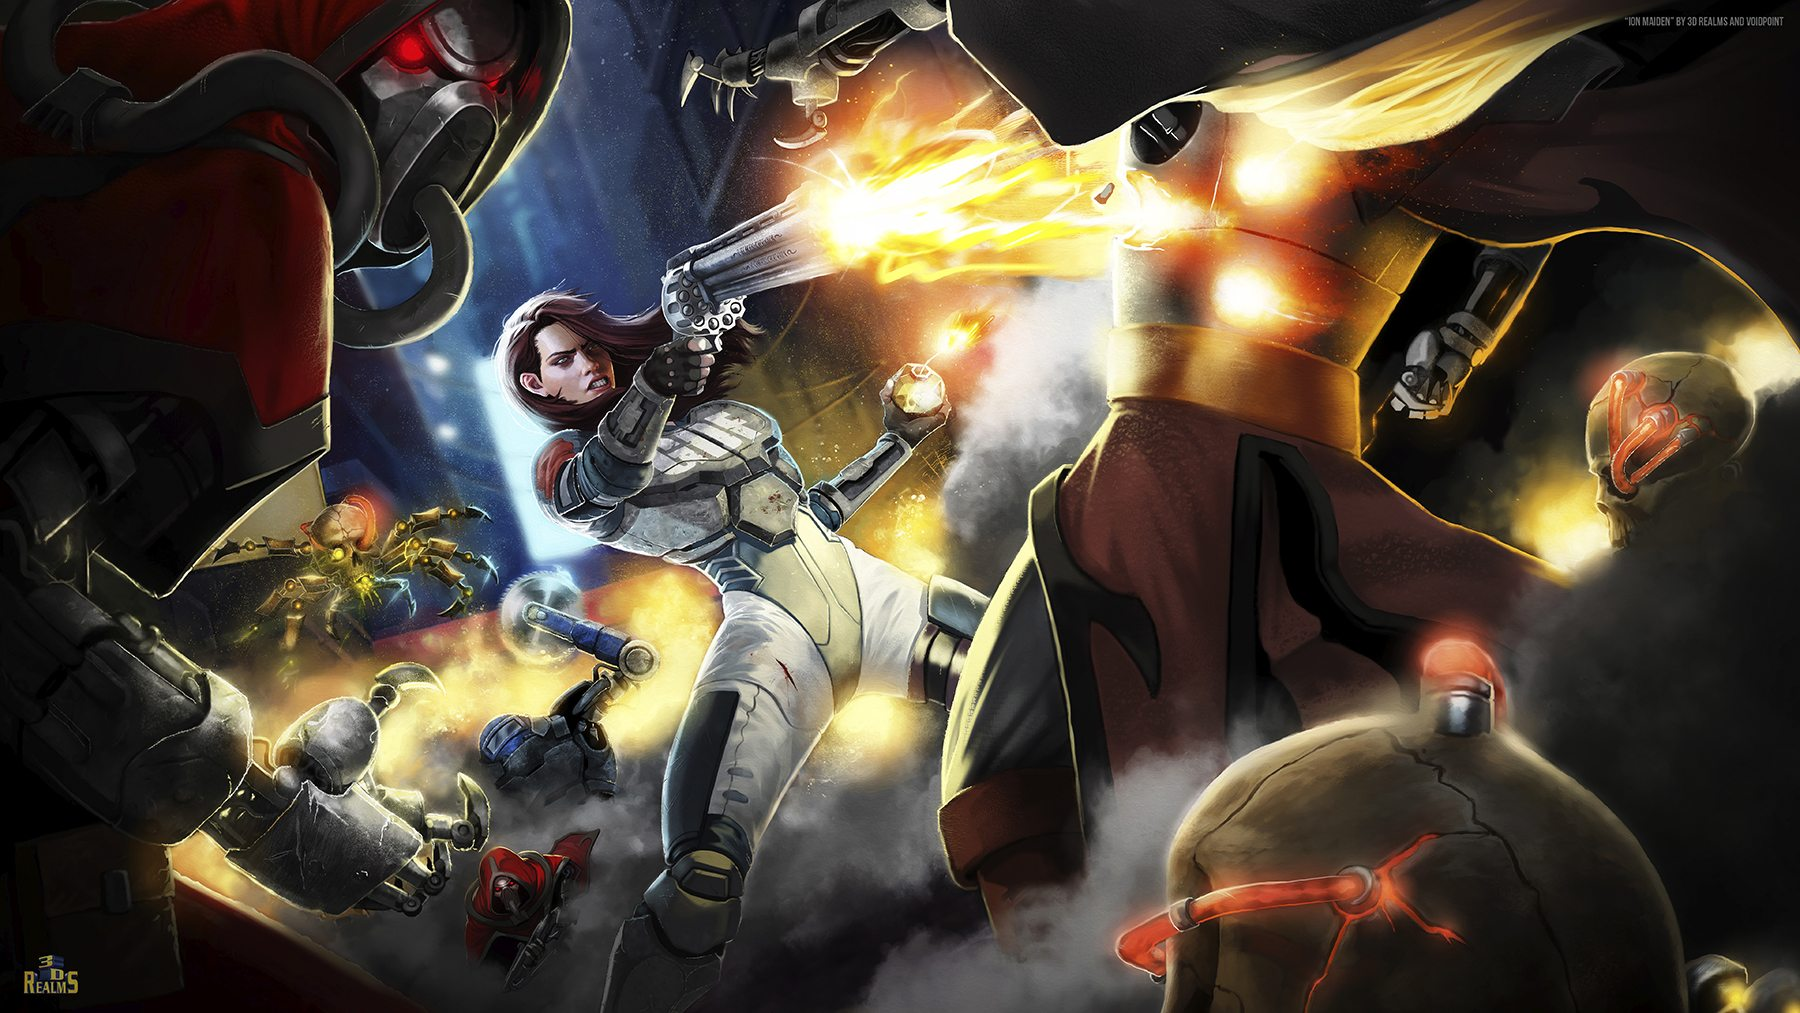 3D Realms returns with Old School FPS Ion Maiden